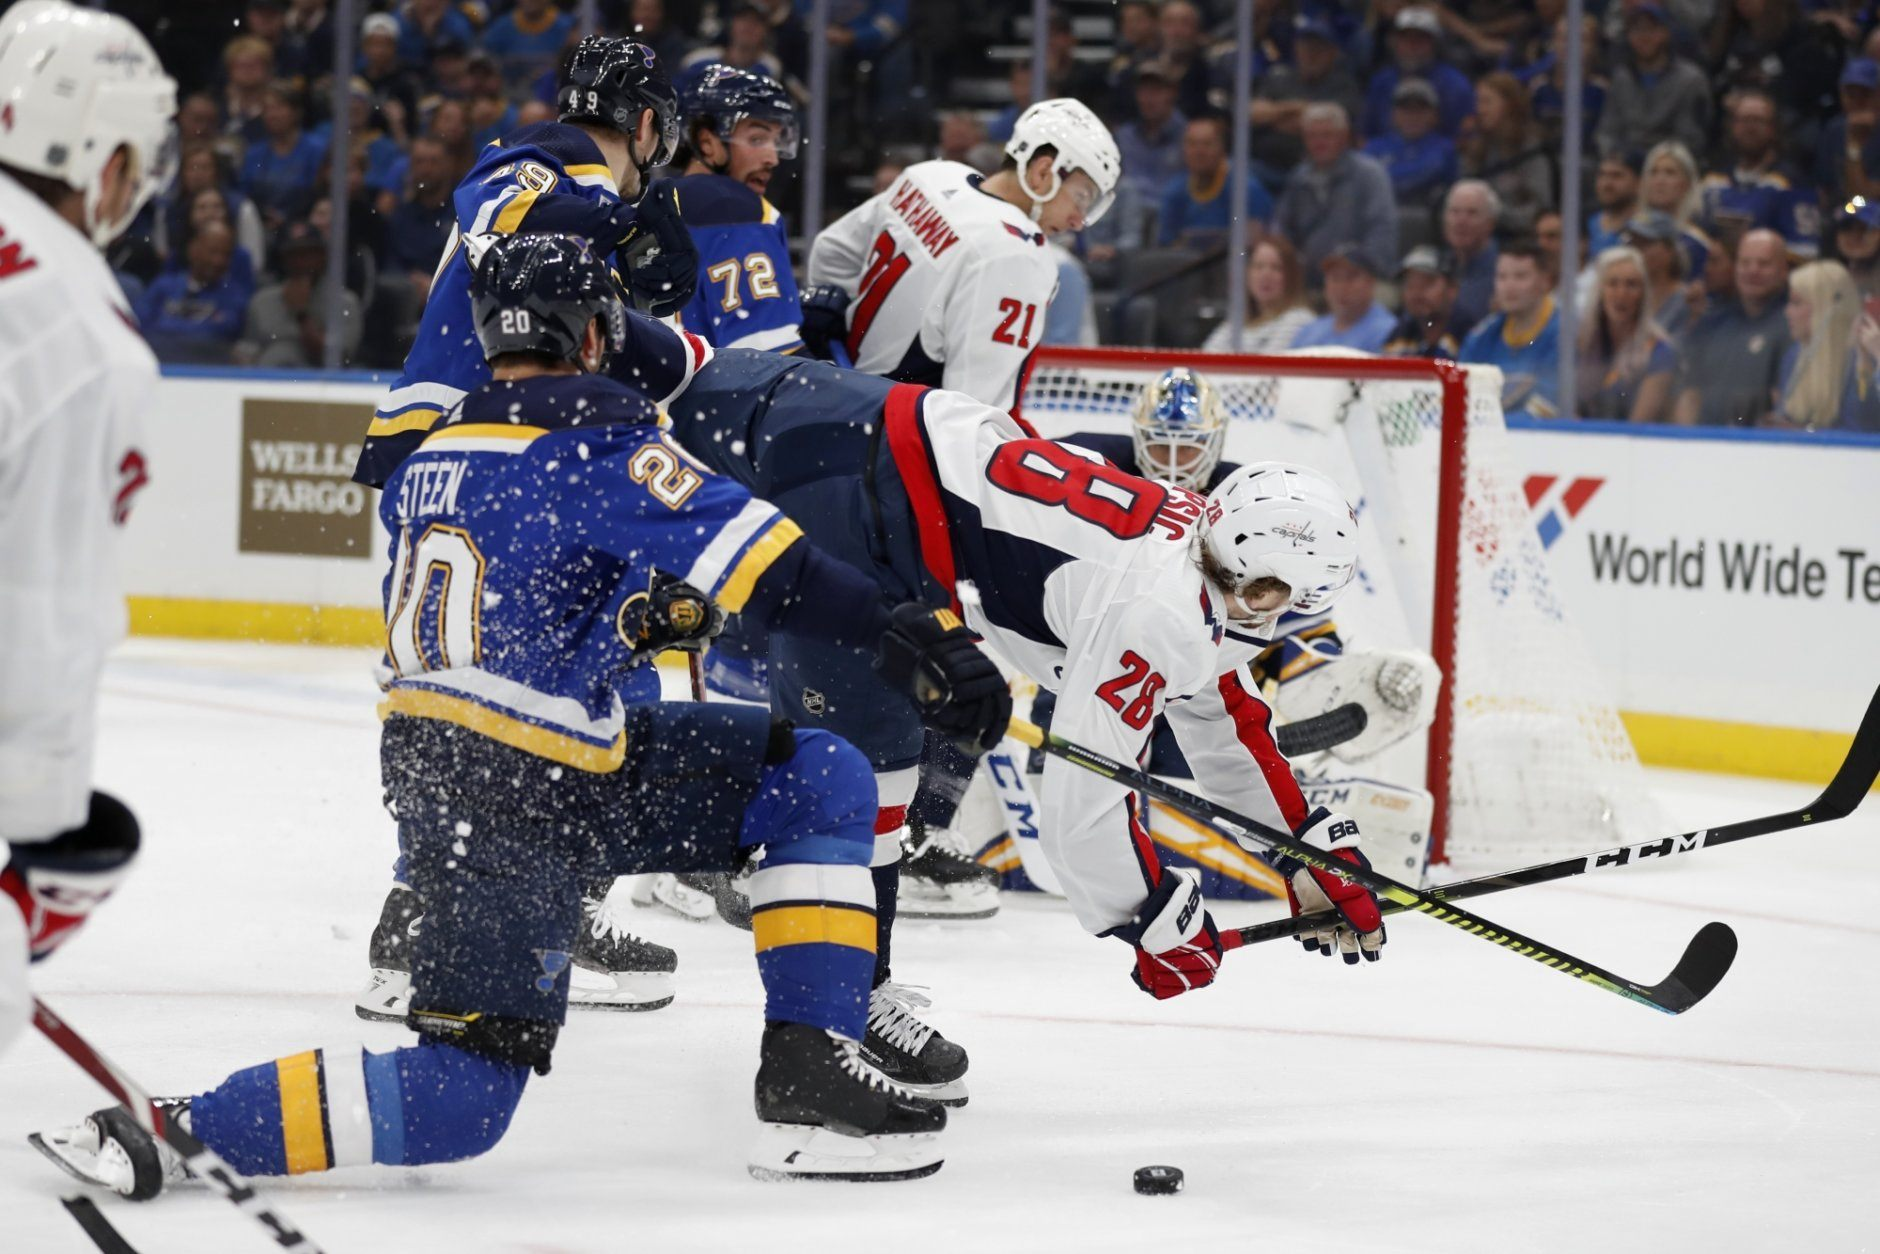 Washington Capitals' Brendan Leipsic (28) is upended while chasing after a loose puck and colliding with St. Louis Blues' Alexander Steen (20) during the first period of an NHL hockey game Wednesday, Oct. 2, 2019, in St. Louis. (AP Photo/Jeff Roberson)